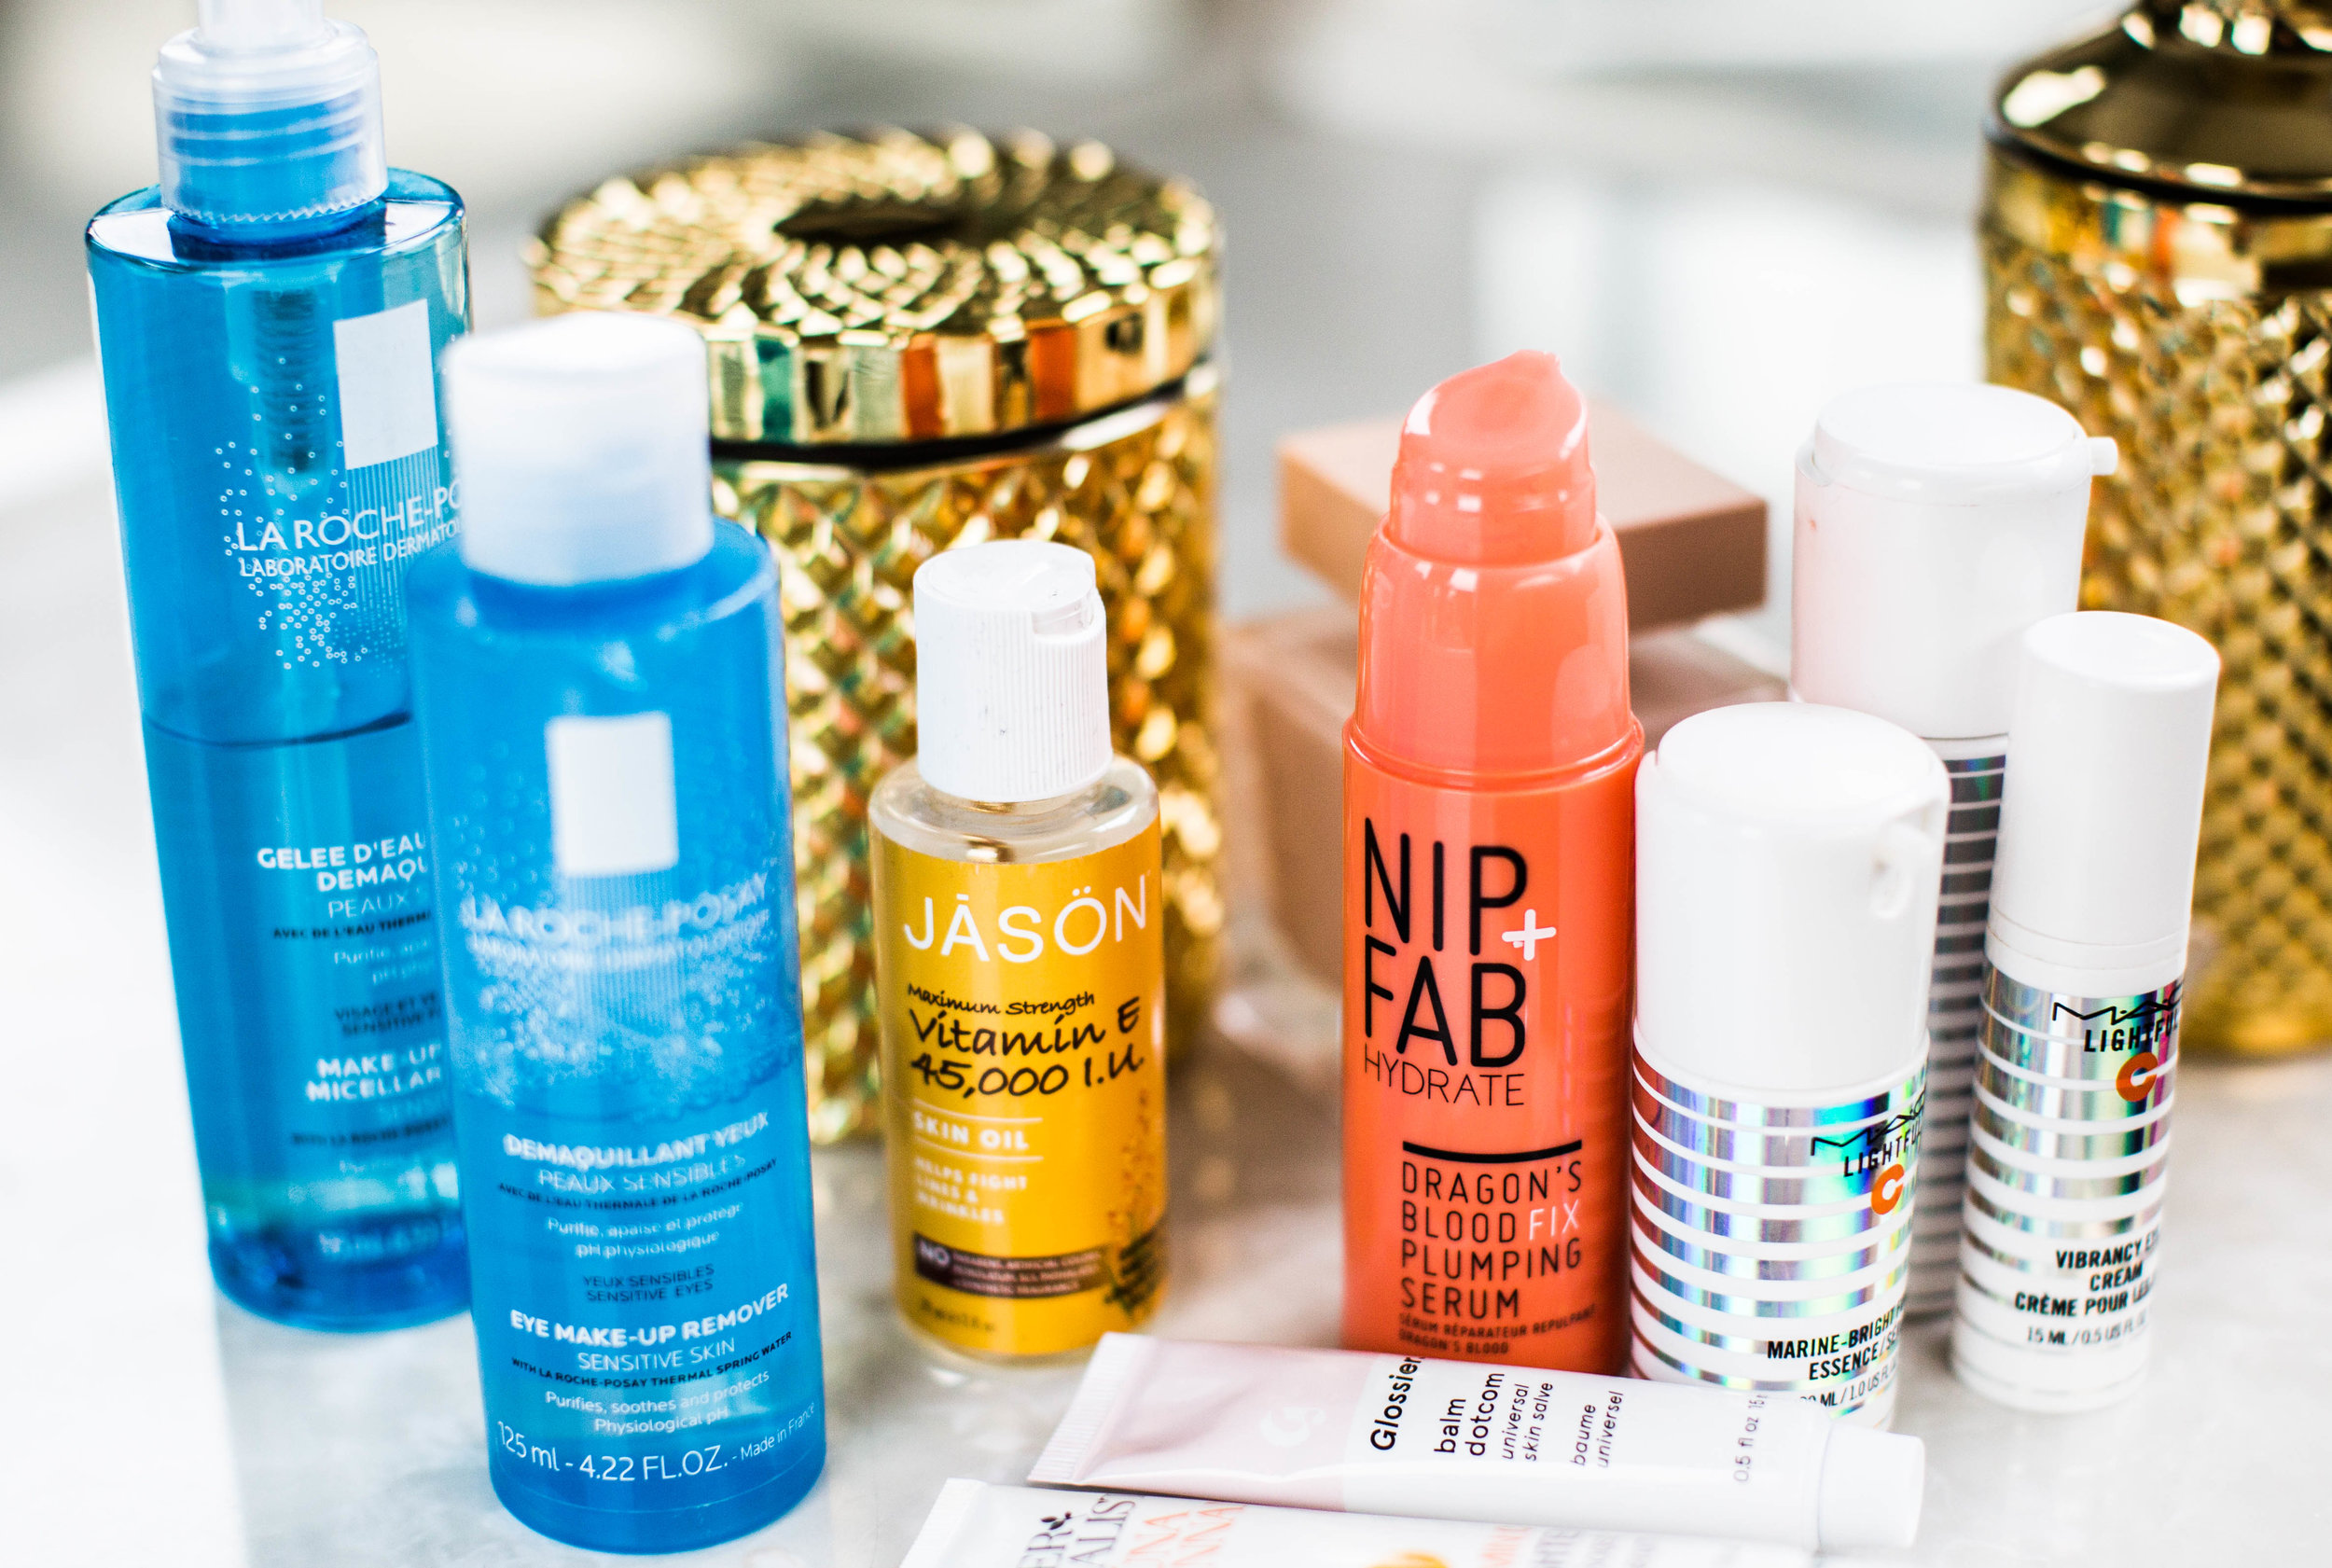 REGIMEN - Overwhelmed with too many products sitting on your counter?Our dermatologists will help you assess which products and ingredients best fit a regimen for your skin's unique conditionUnleash your skin's full potential to glow.